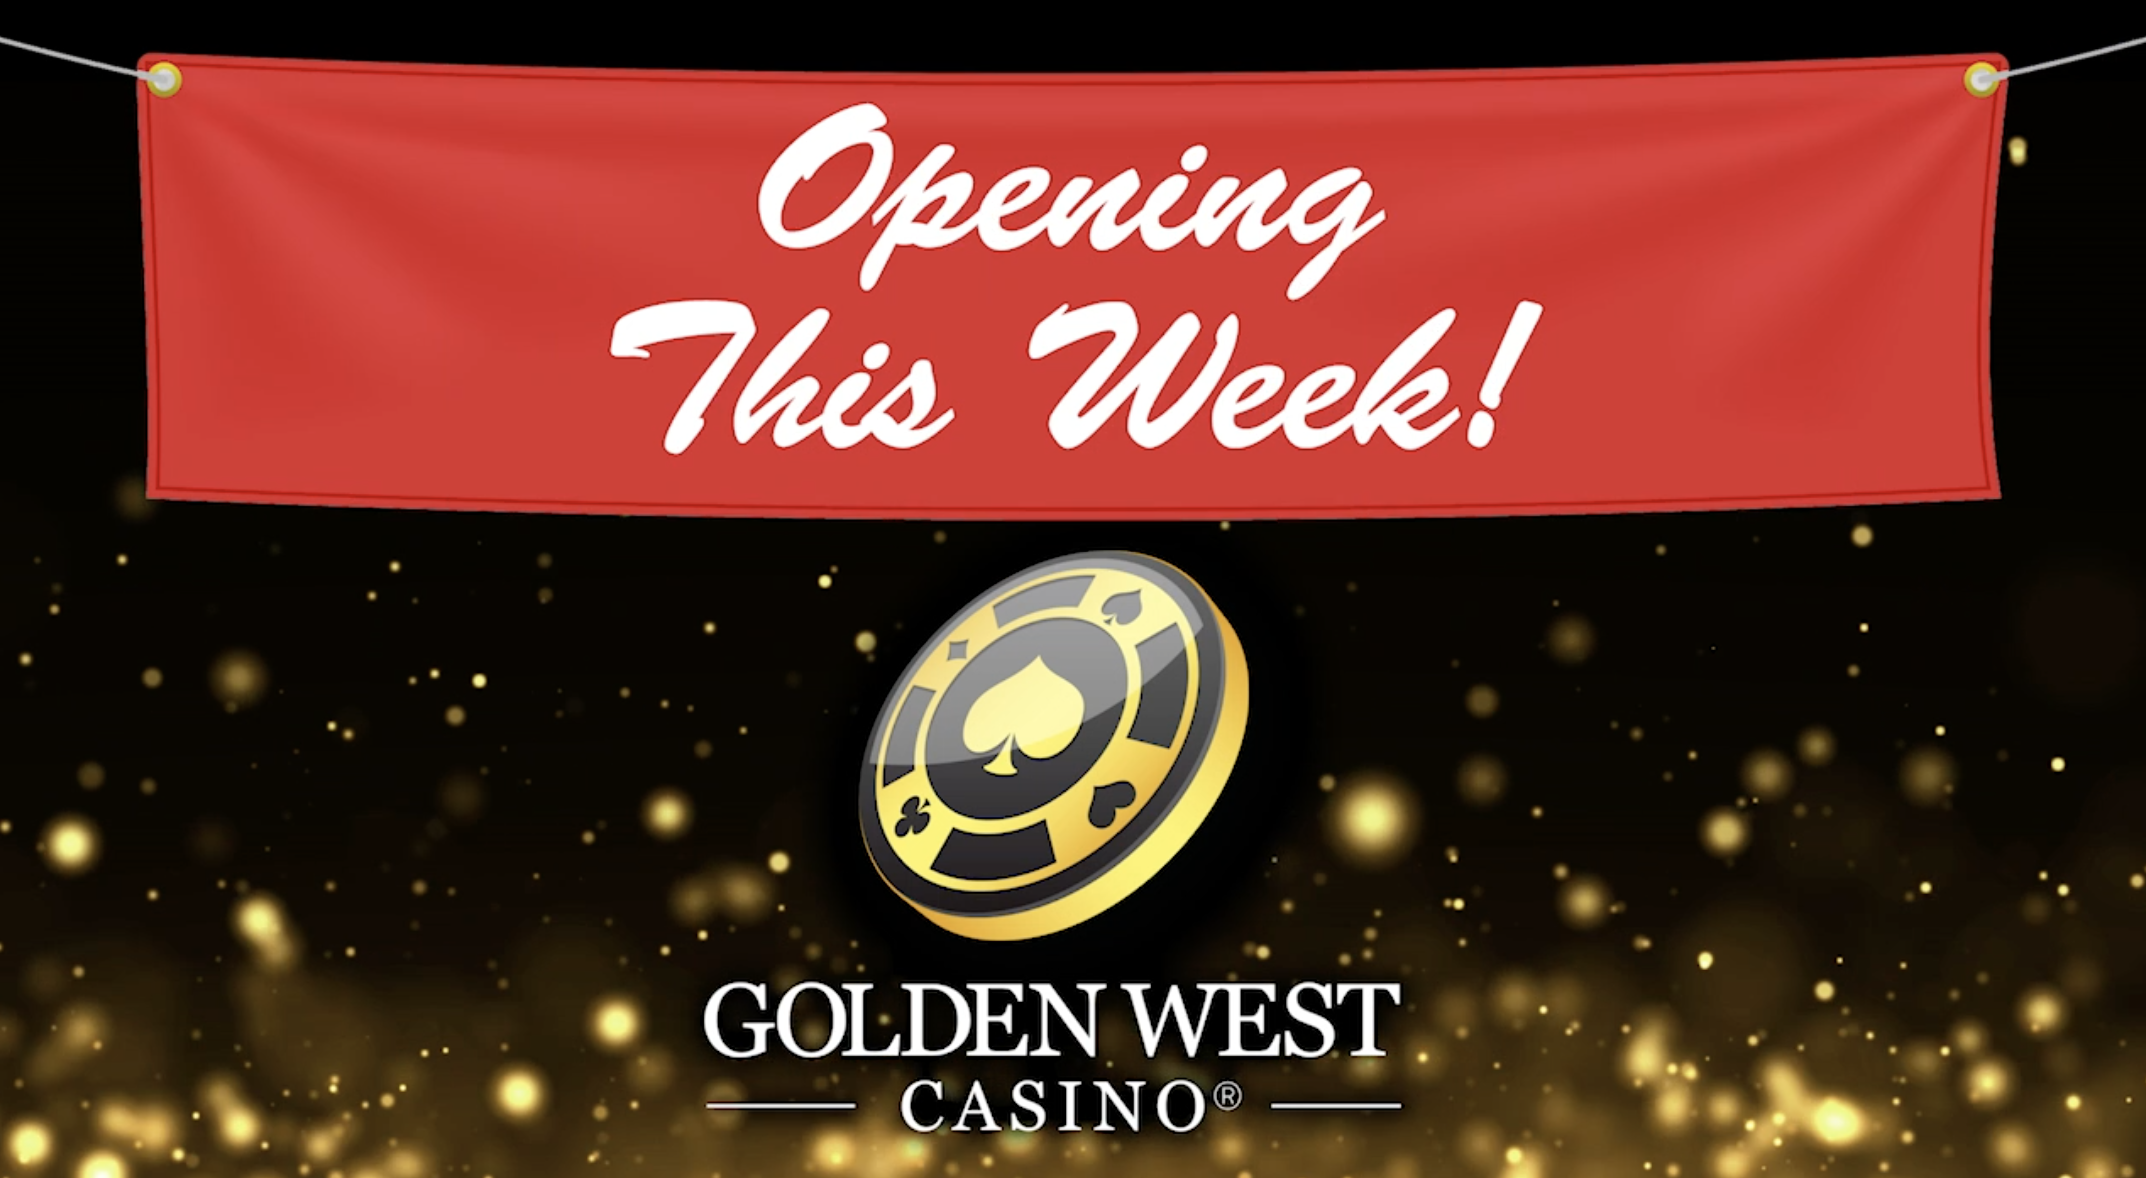 Opening This Week! Golden West Casino